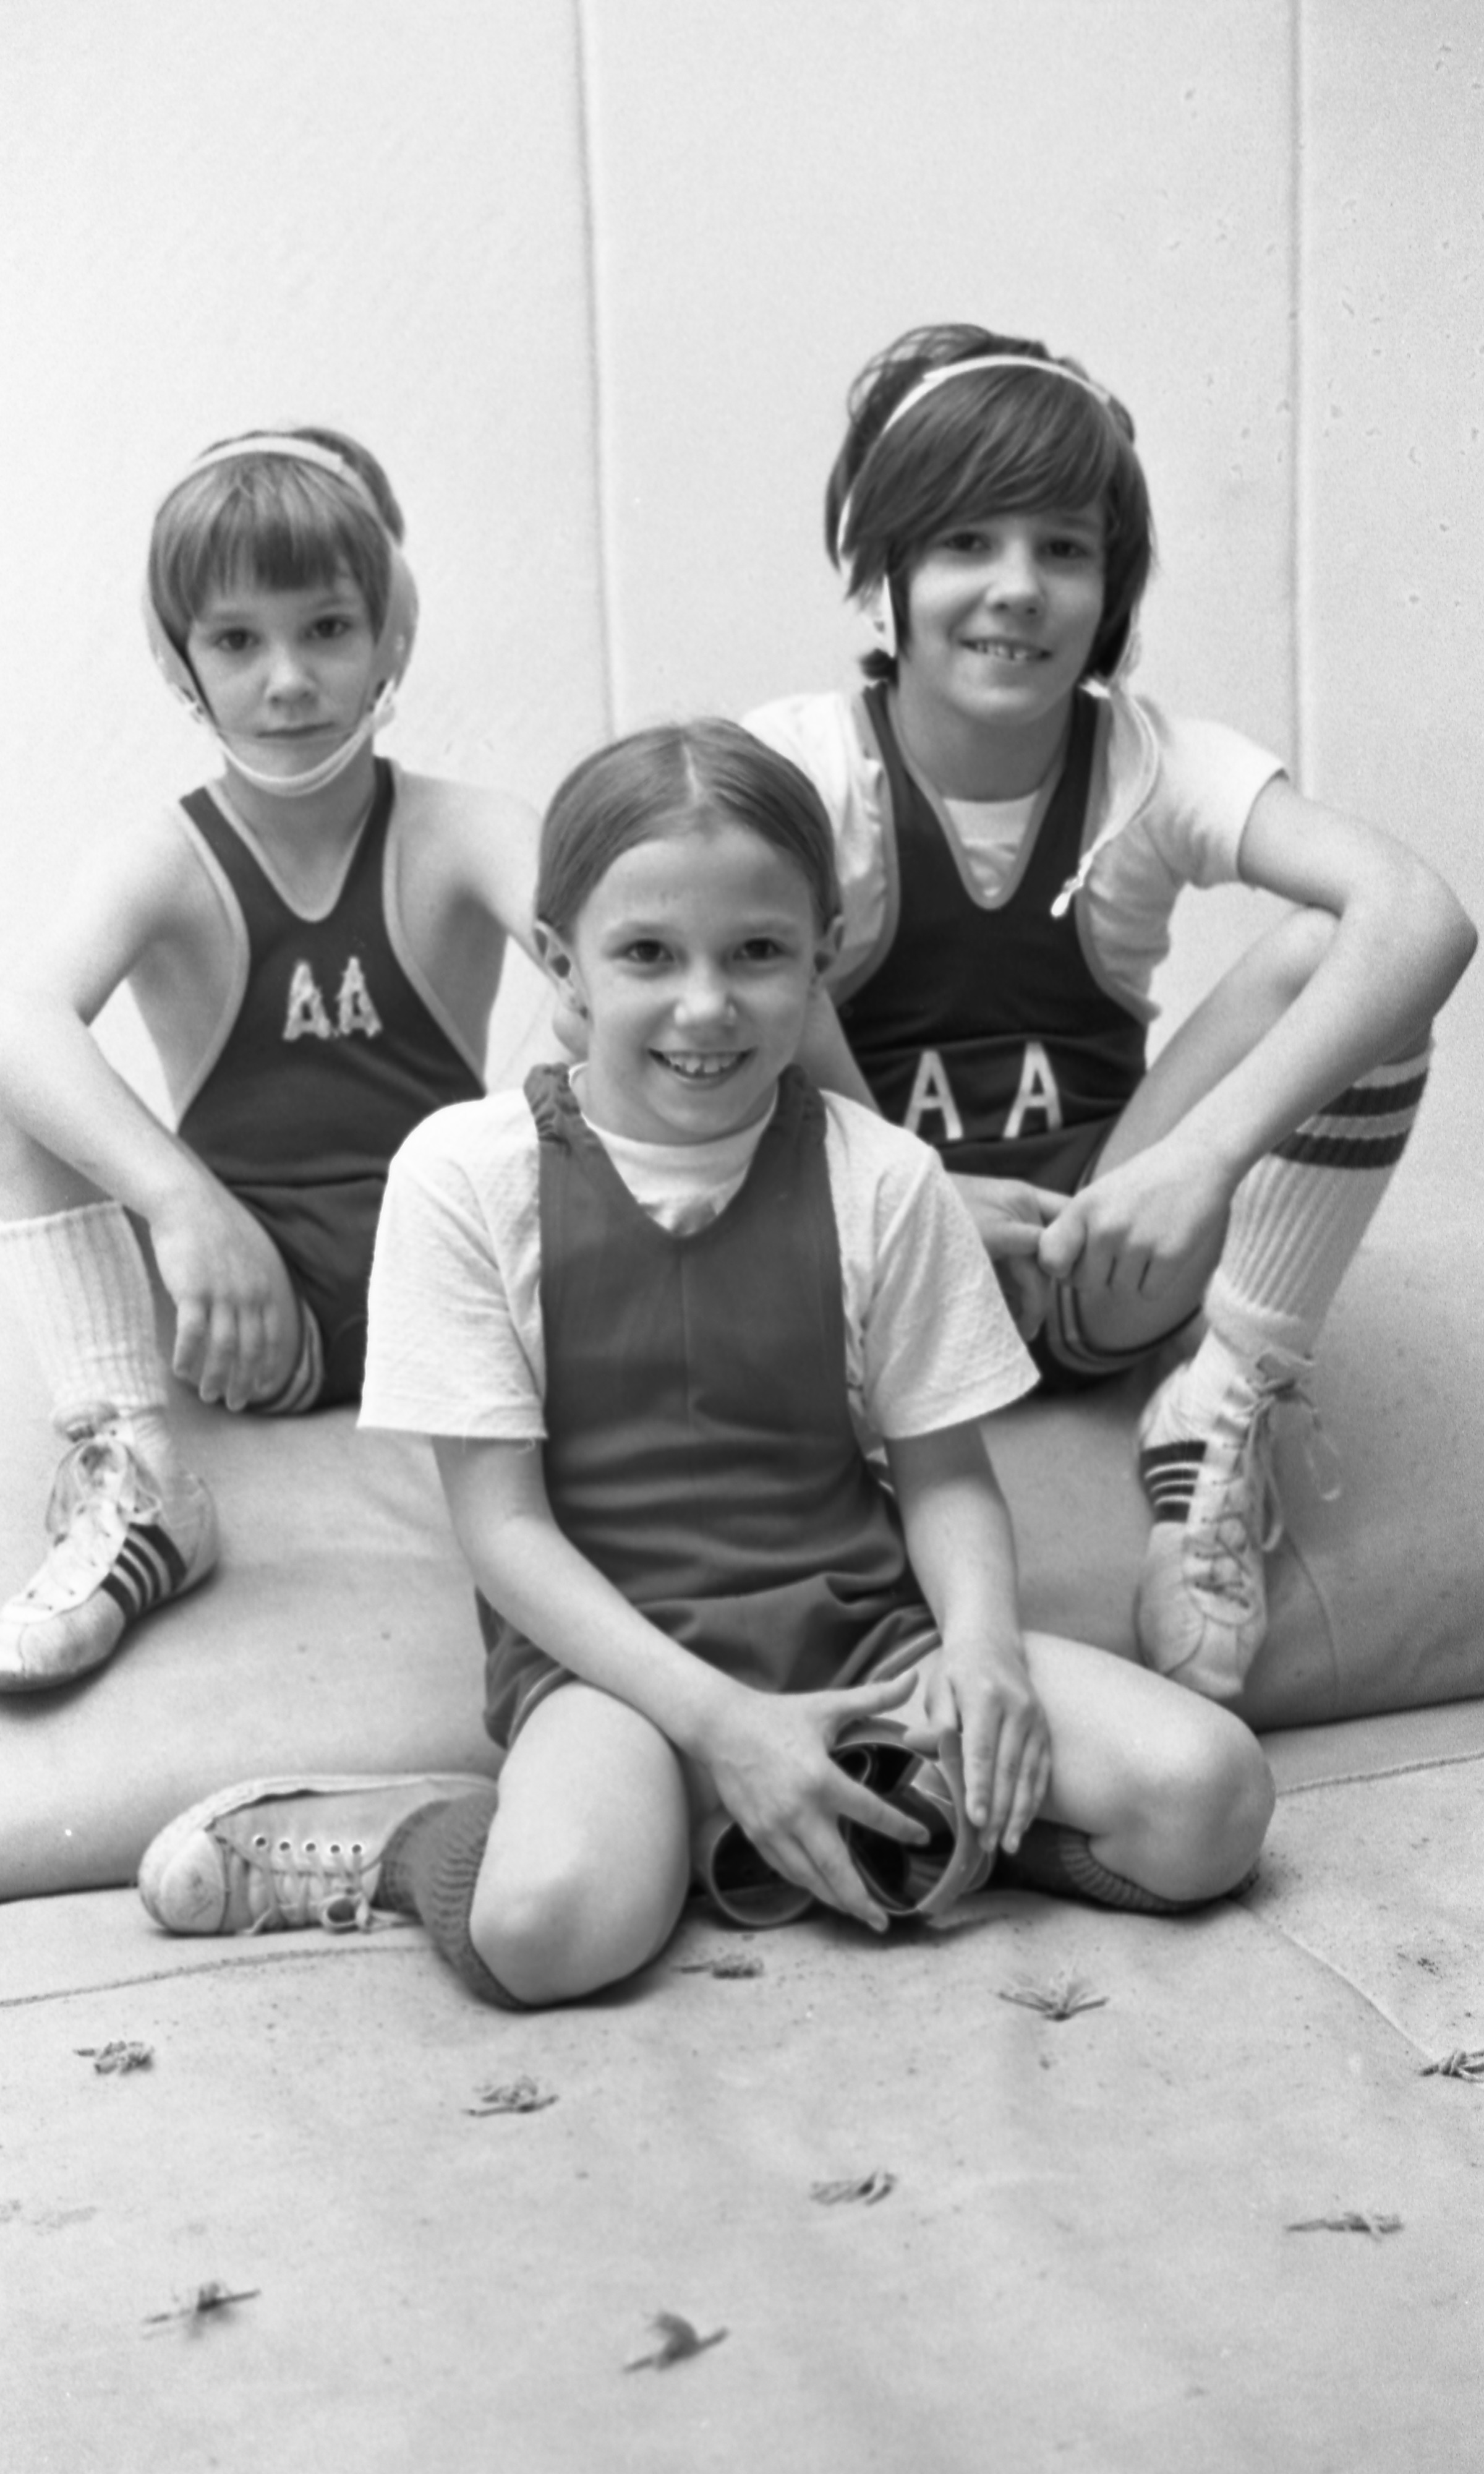 A Wrestling Family - Siblings Andrew, Tricia, & Jamie McNaughton, May 1975 image